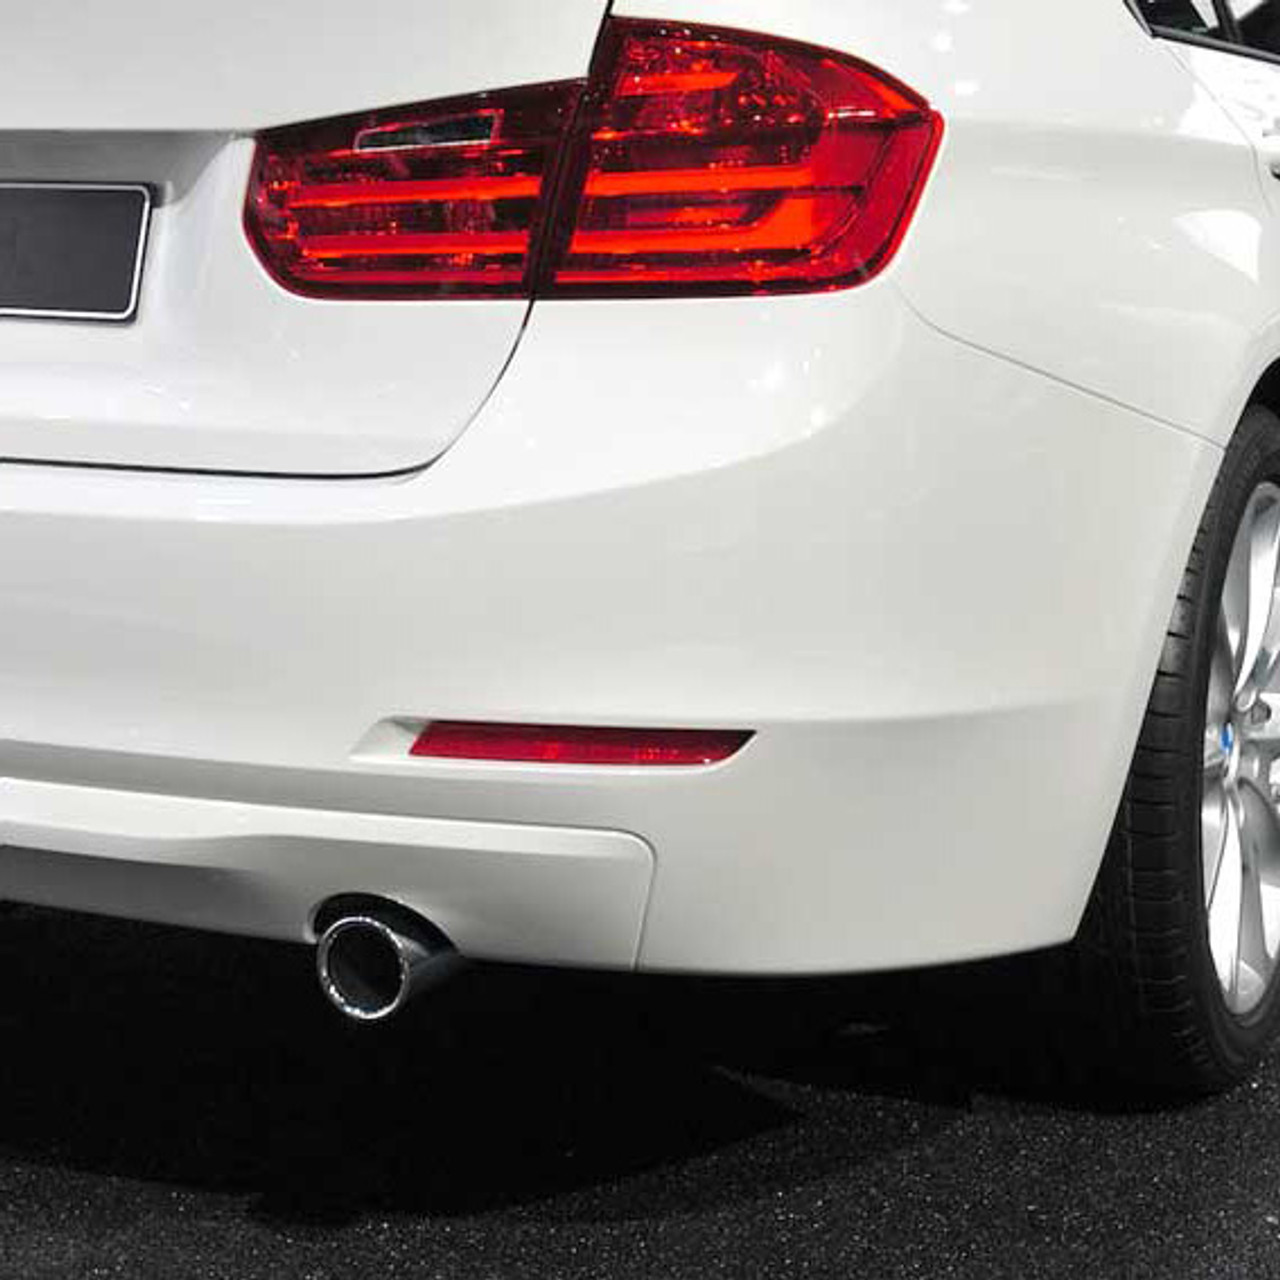 BMW Rear Right Bumper Reflector for F30, F31 Pre-LCI